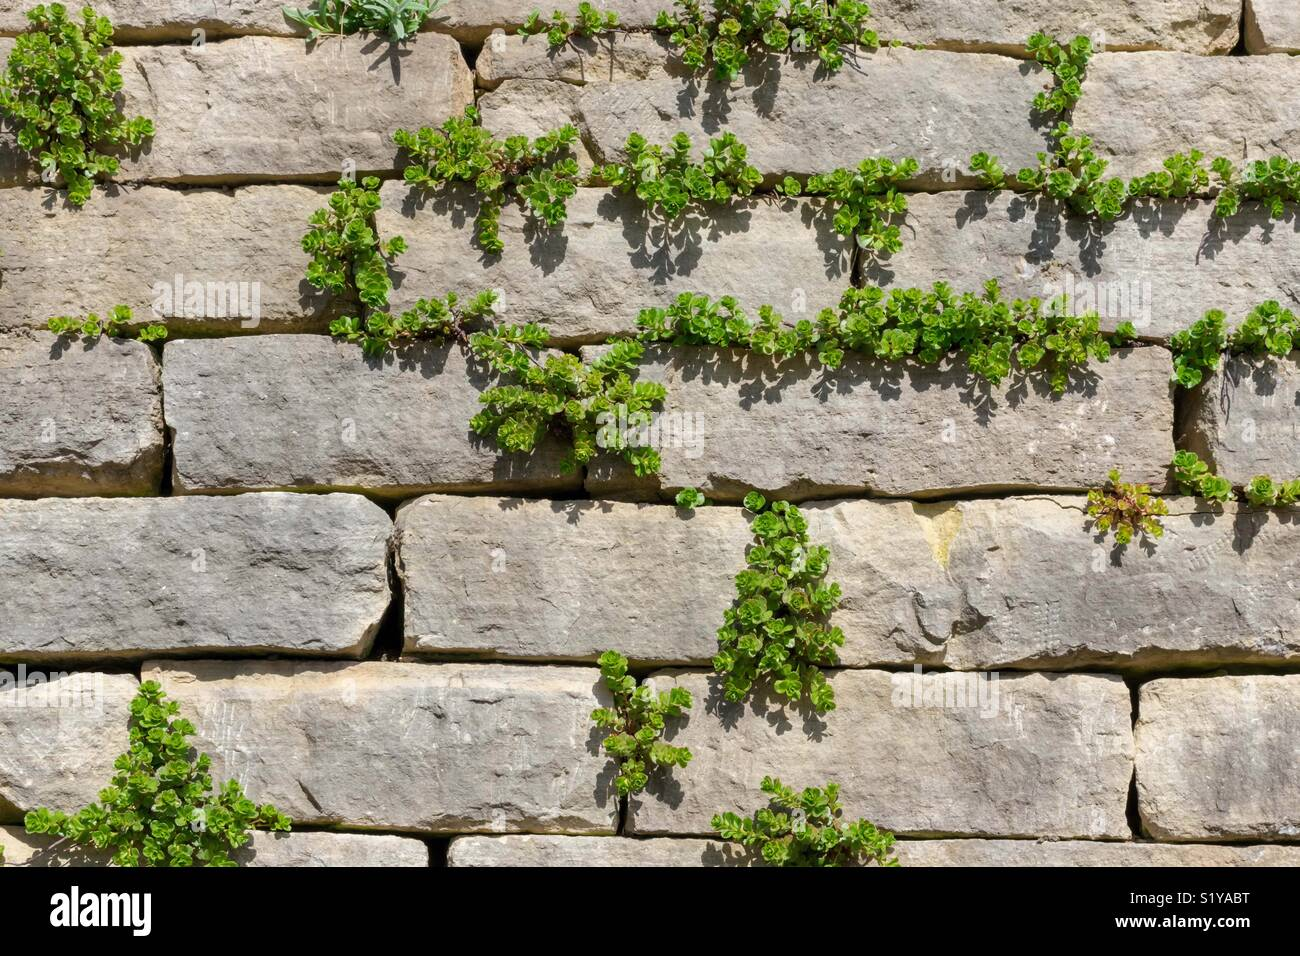 Textured limestone brick wall with climbing vines - Stock Image